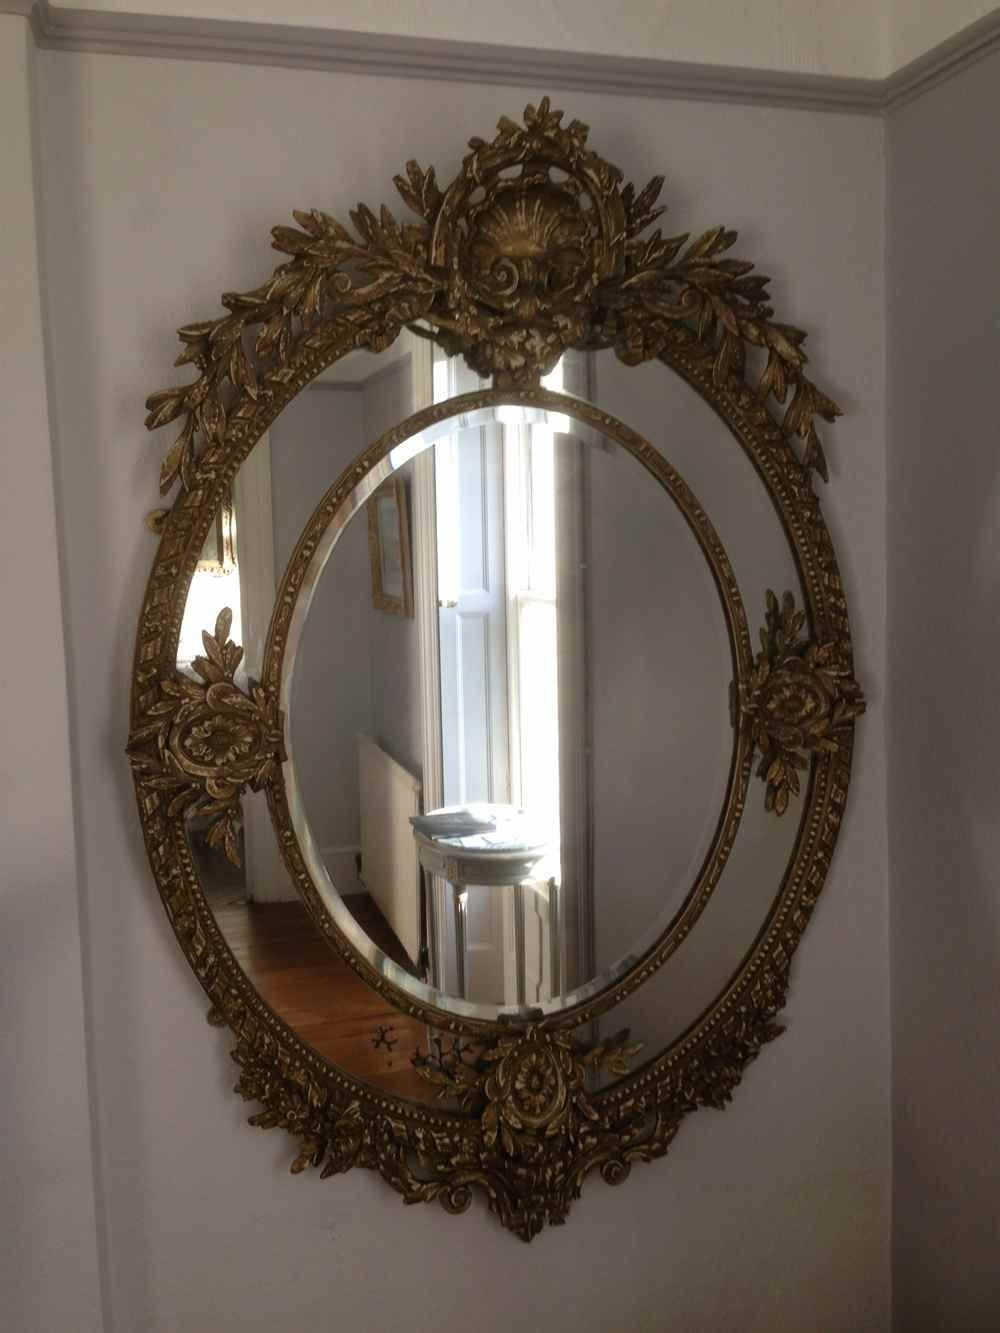 A Wonderful Large Antique 19Th Century French Carved Wood Oval with Antique Ornate Mirrors (Image 2 of 25)